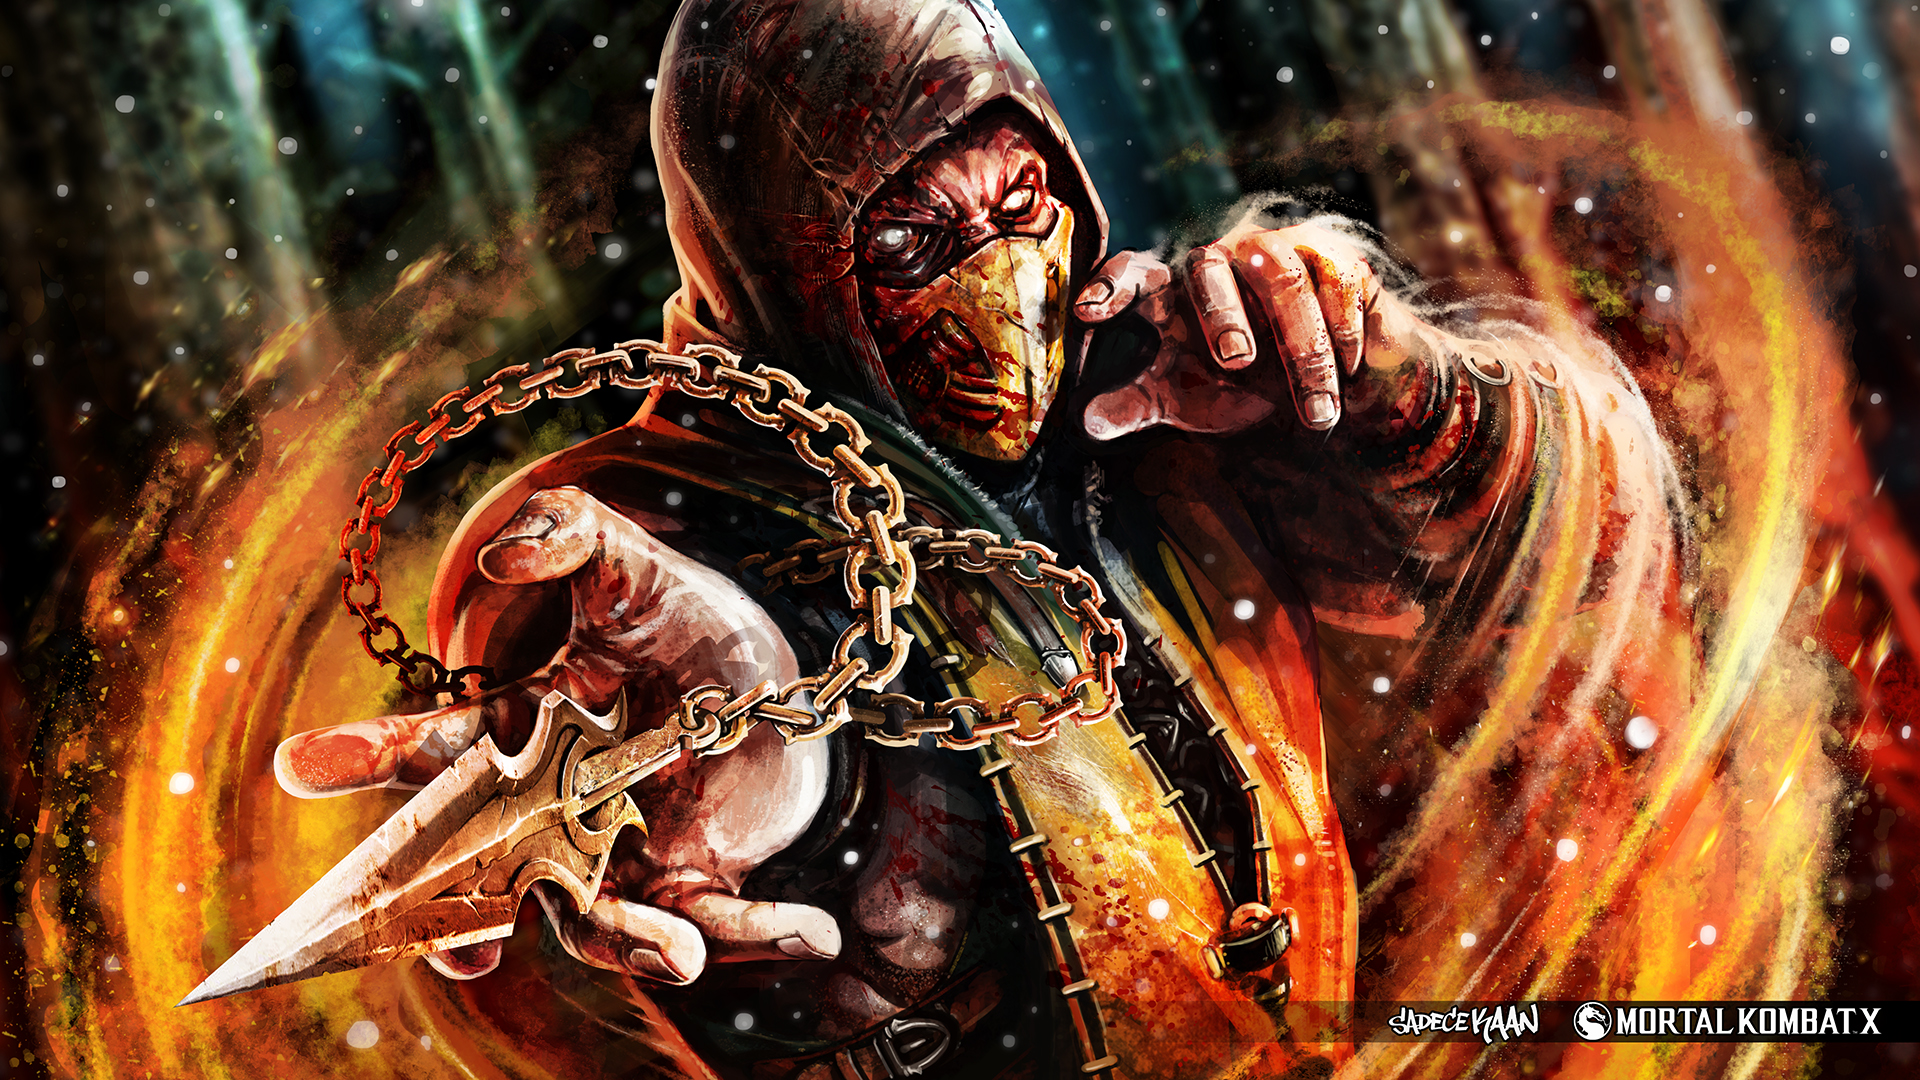 40 Scorpion Mortal Kombat HD Wallpapers